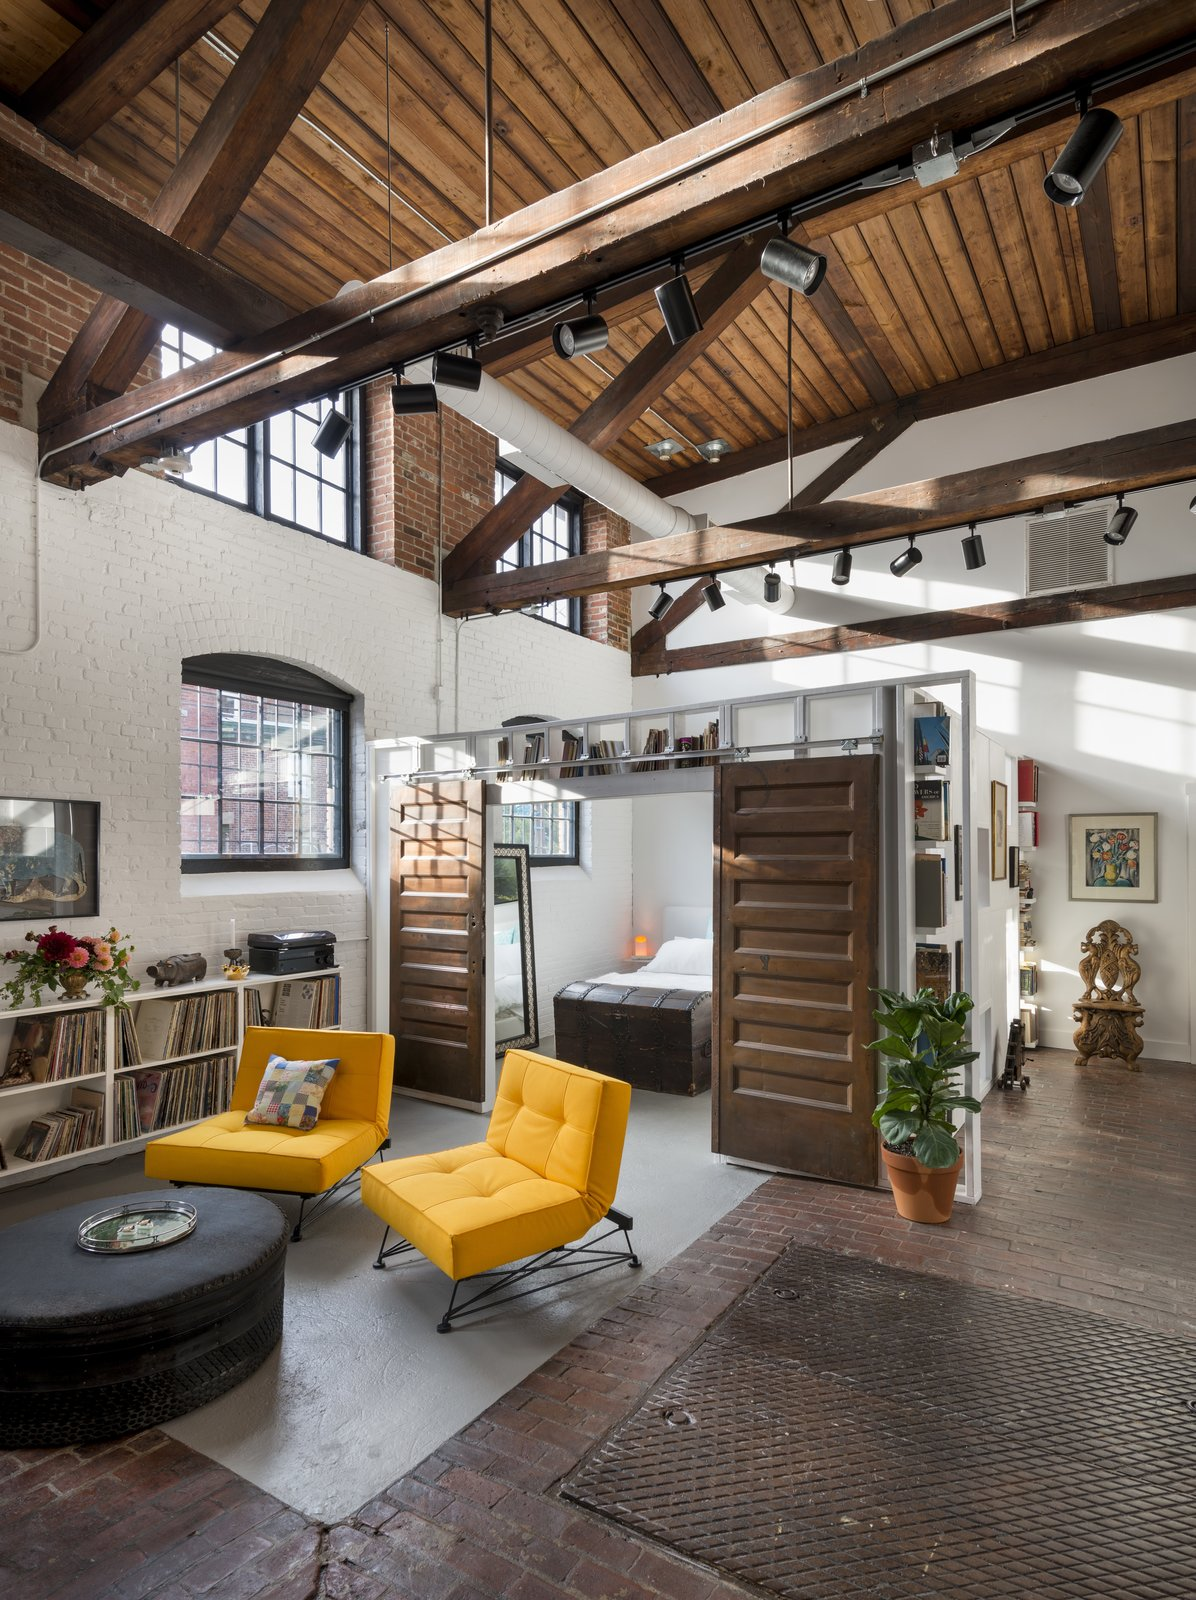 Living Room, Bookcase, Track Lighting, Brick Floor, Concrete Floor, and Chair Loft Living Room and Bedroom  Photo 7 of 8 in 7 Incredible Rentals Under $100 For a Last-Minute Getaway from J Schatz Studio and Home in Providence